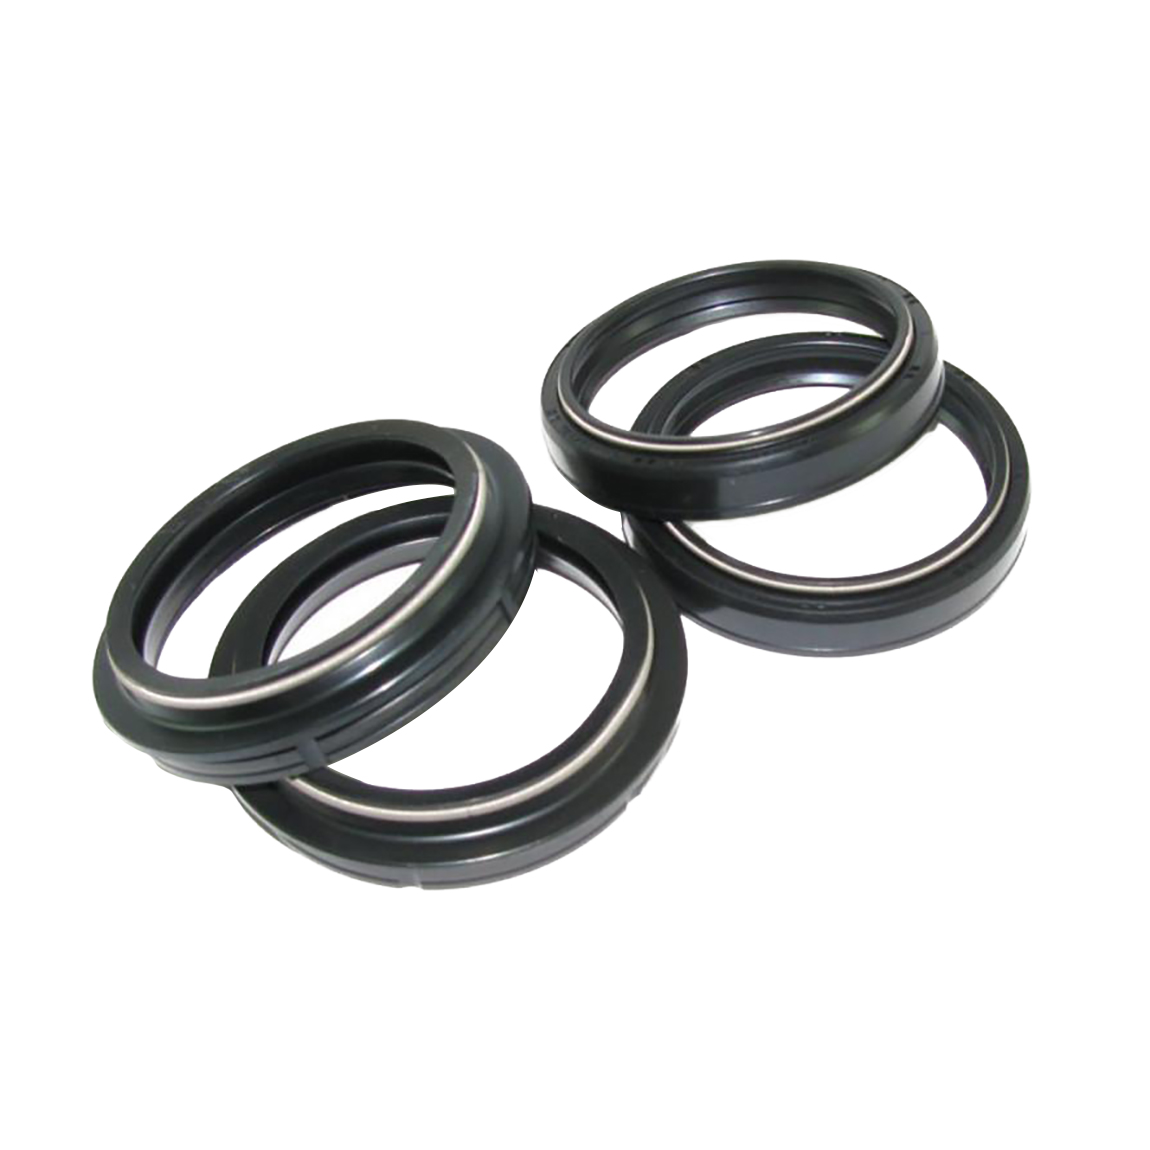 All Balls 56-141 Fork and Dust Seal Kit